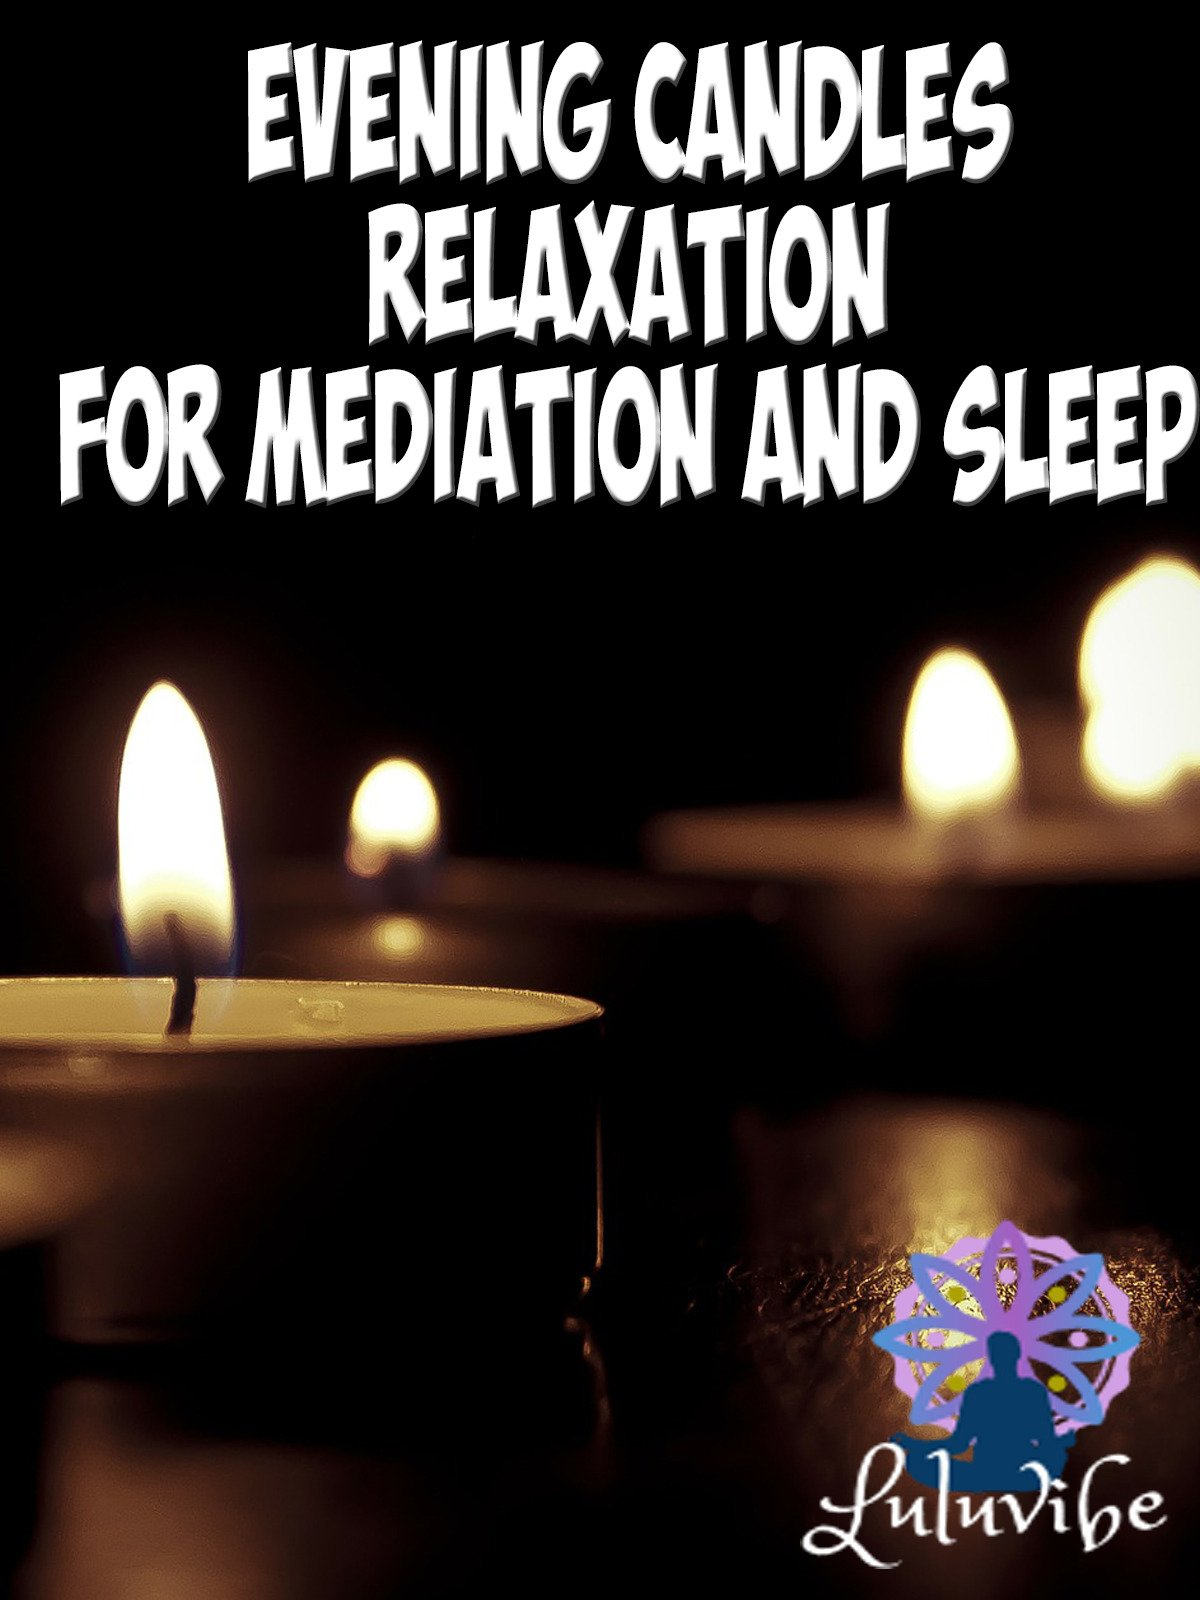 Evening Candles Relaxation For Mediation, Sleep